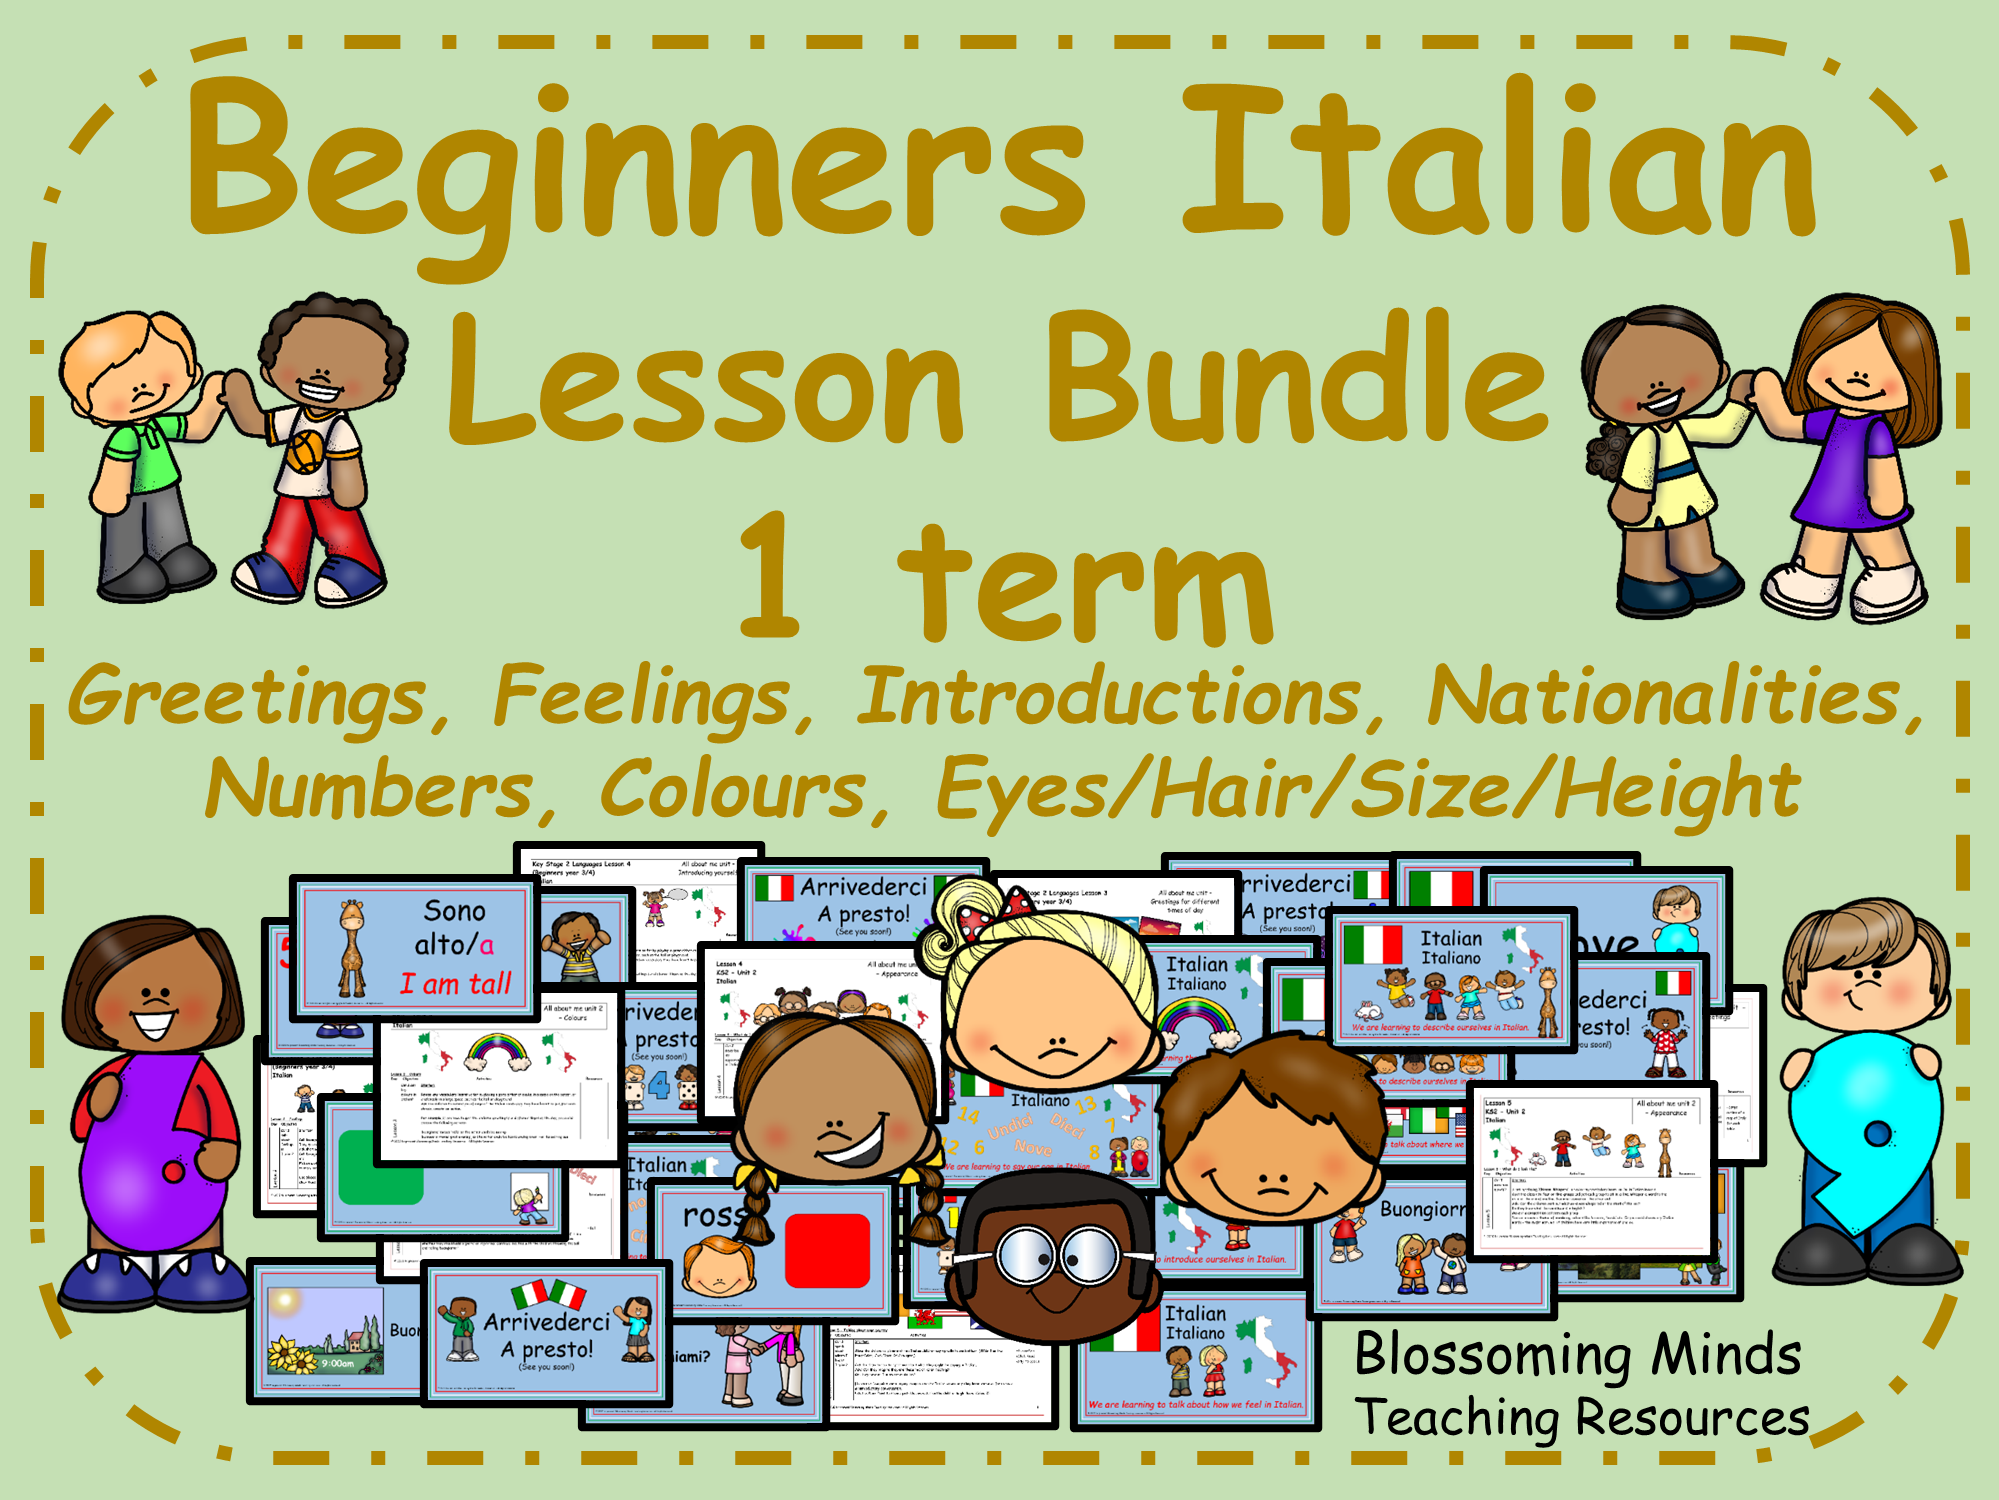 Italian Lesson Bundle (1 term) Beginners